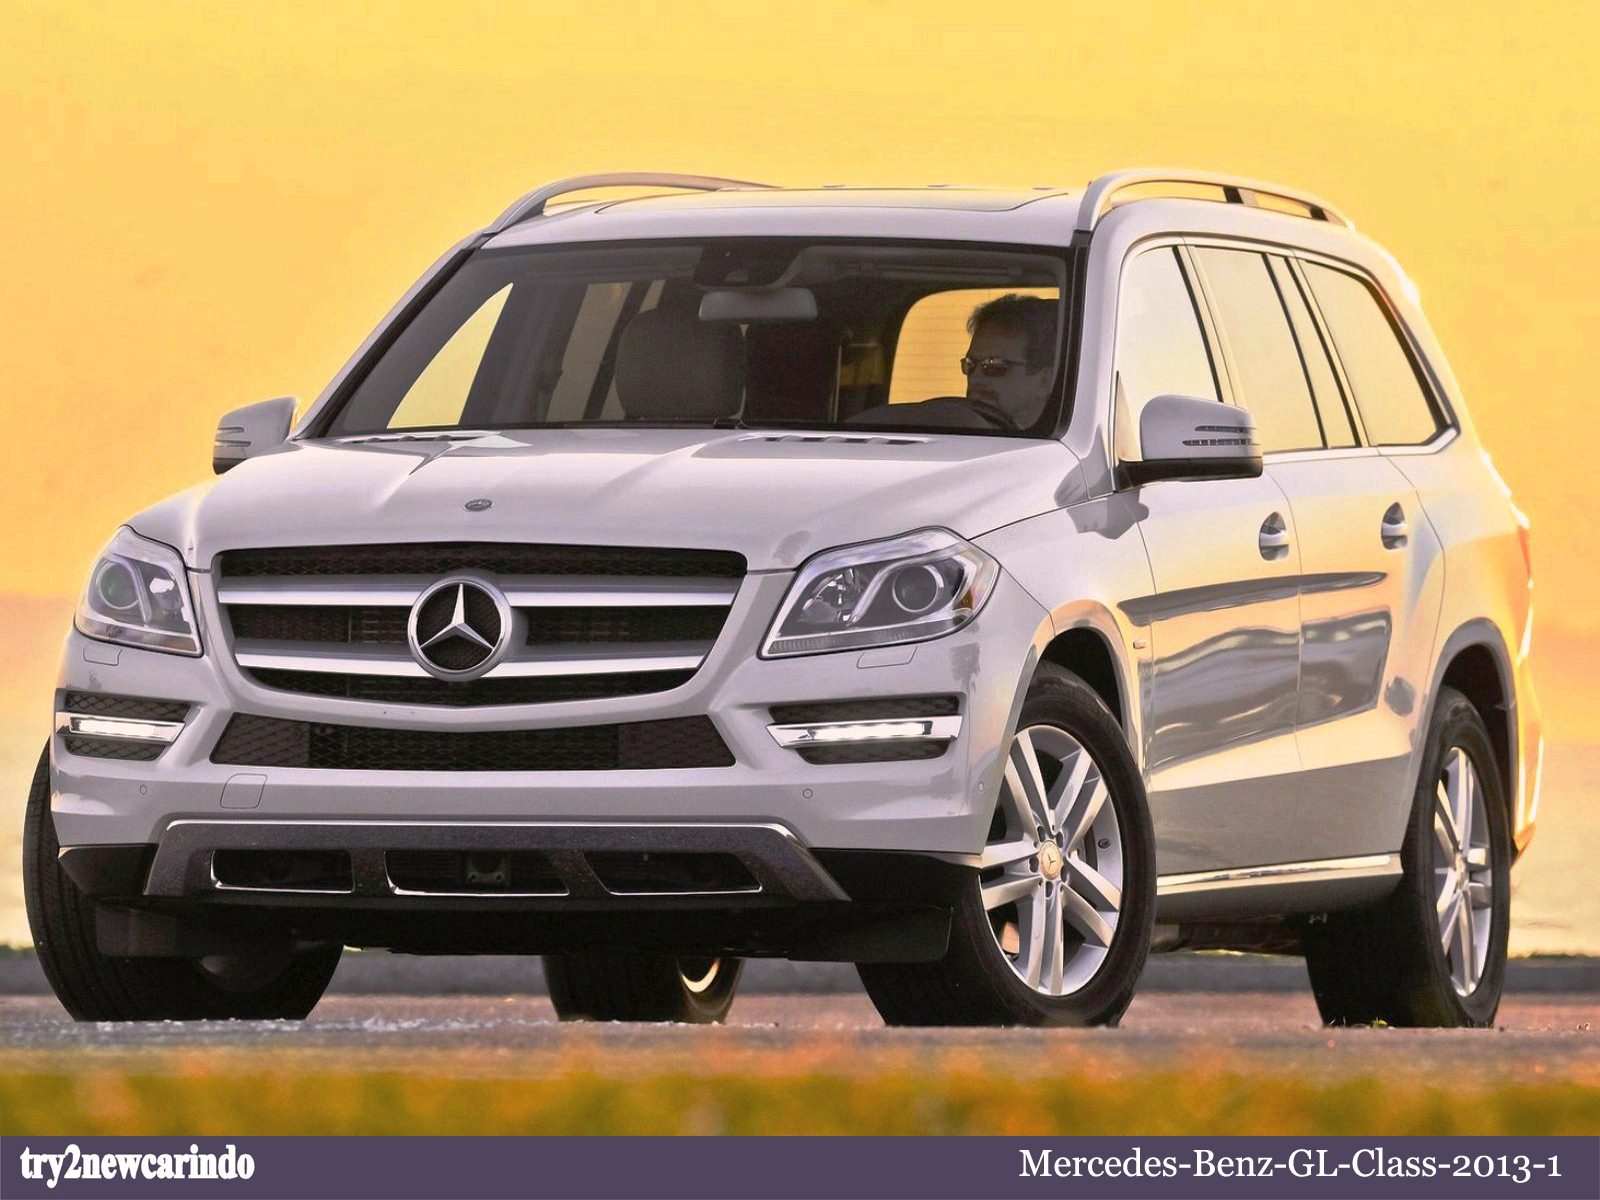 try2newcarindo 2013 mercedes benz gl class. Black Bedroom Furniture Sets. Home Design Ideas